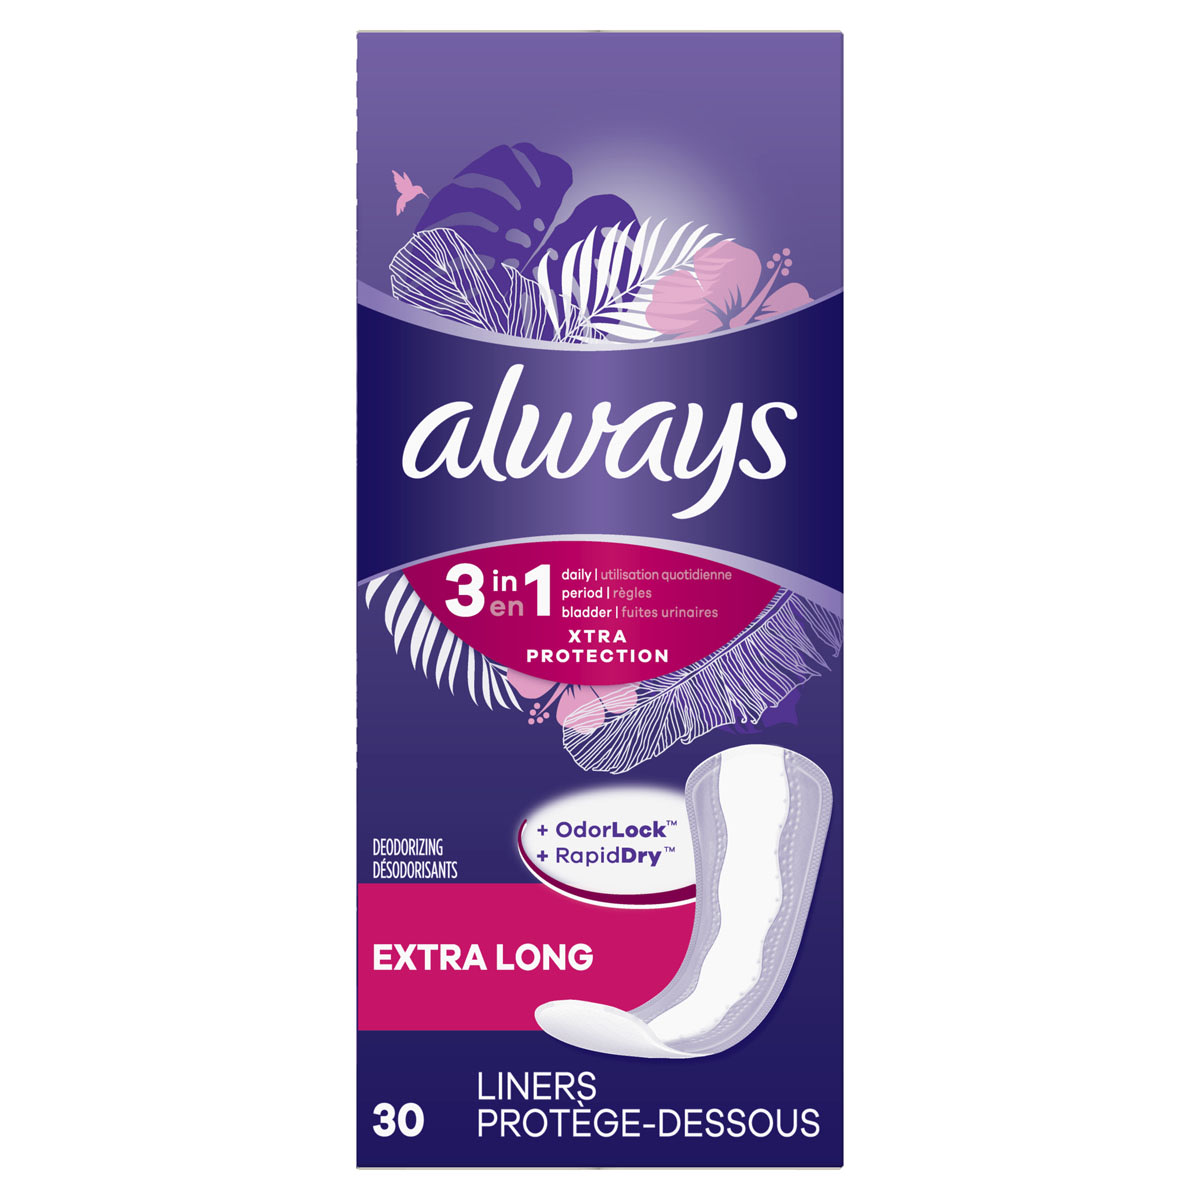 Always Xtra Protection 3in1 Daily Liners Extra Long with LeakGuards, Wrapped